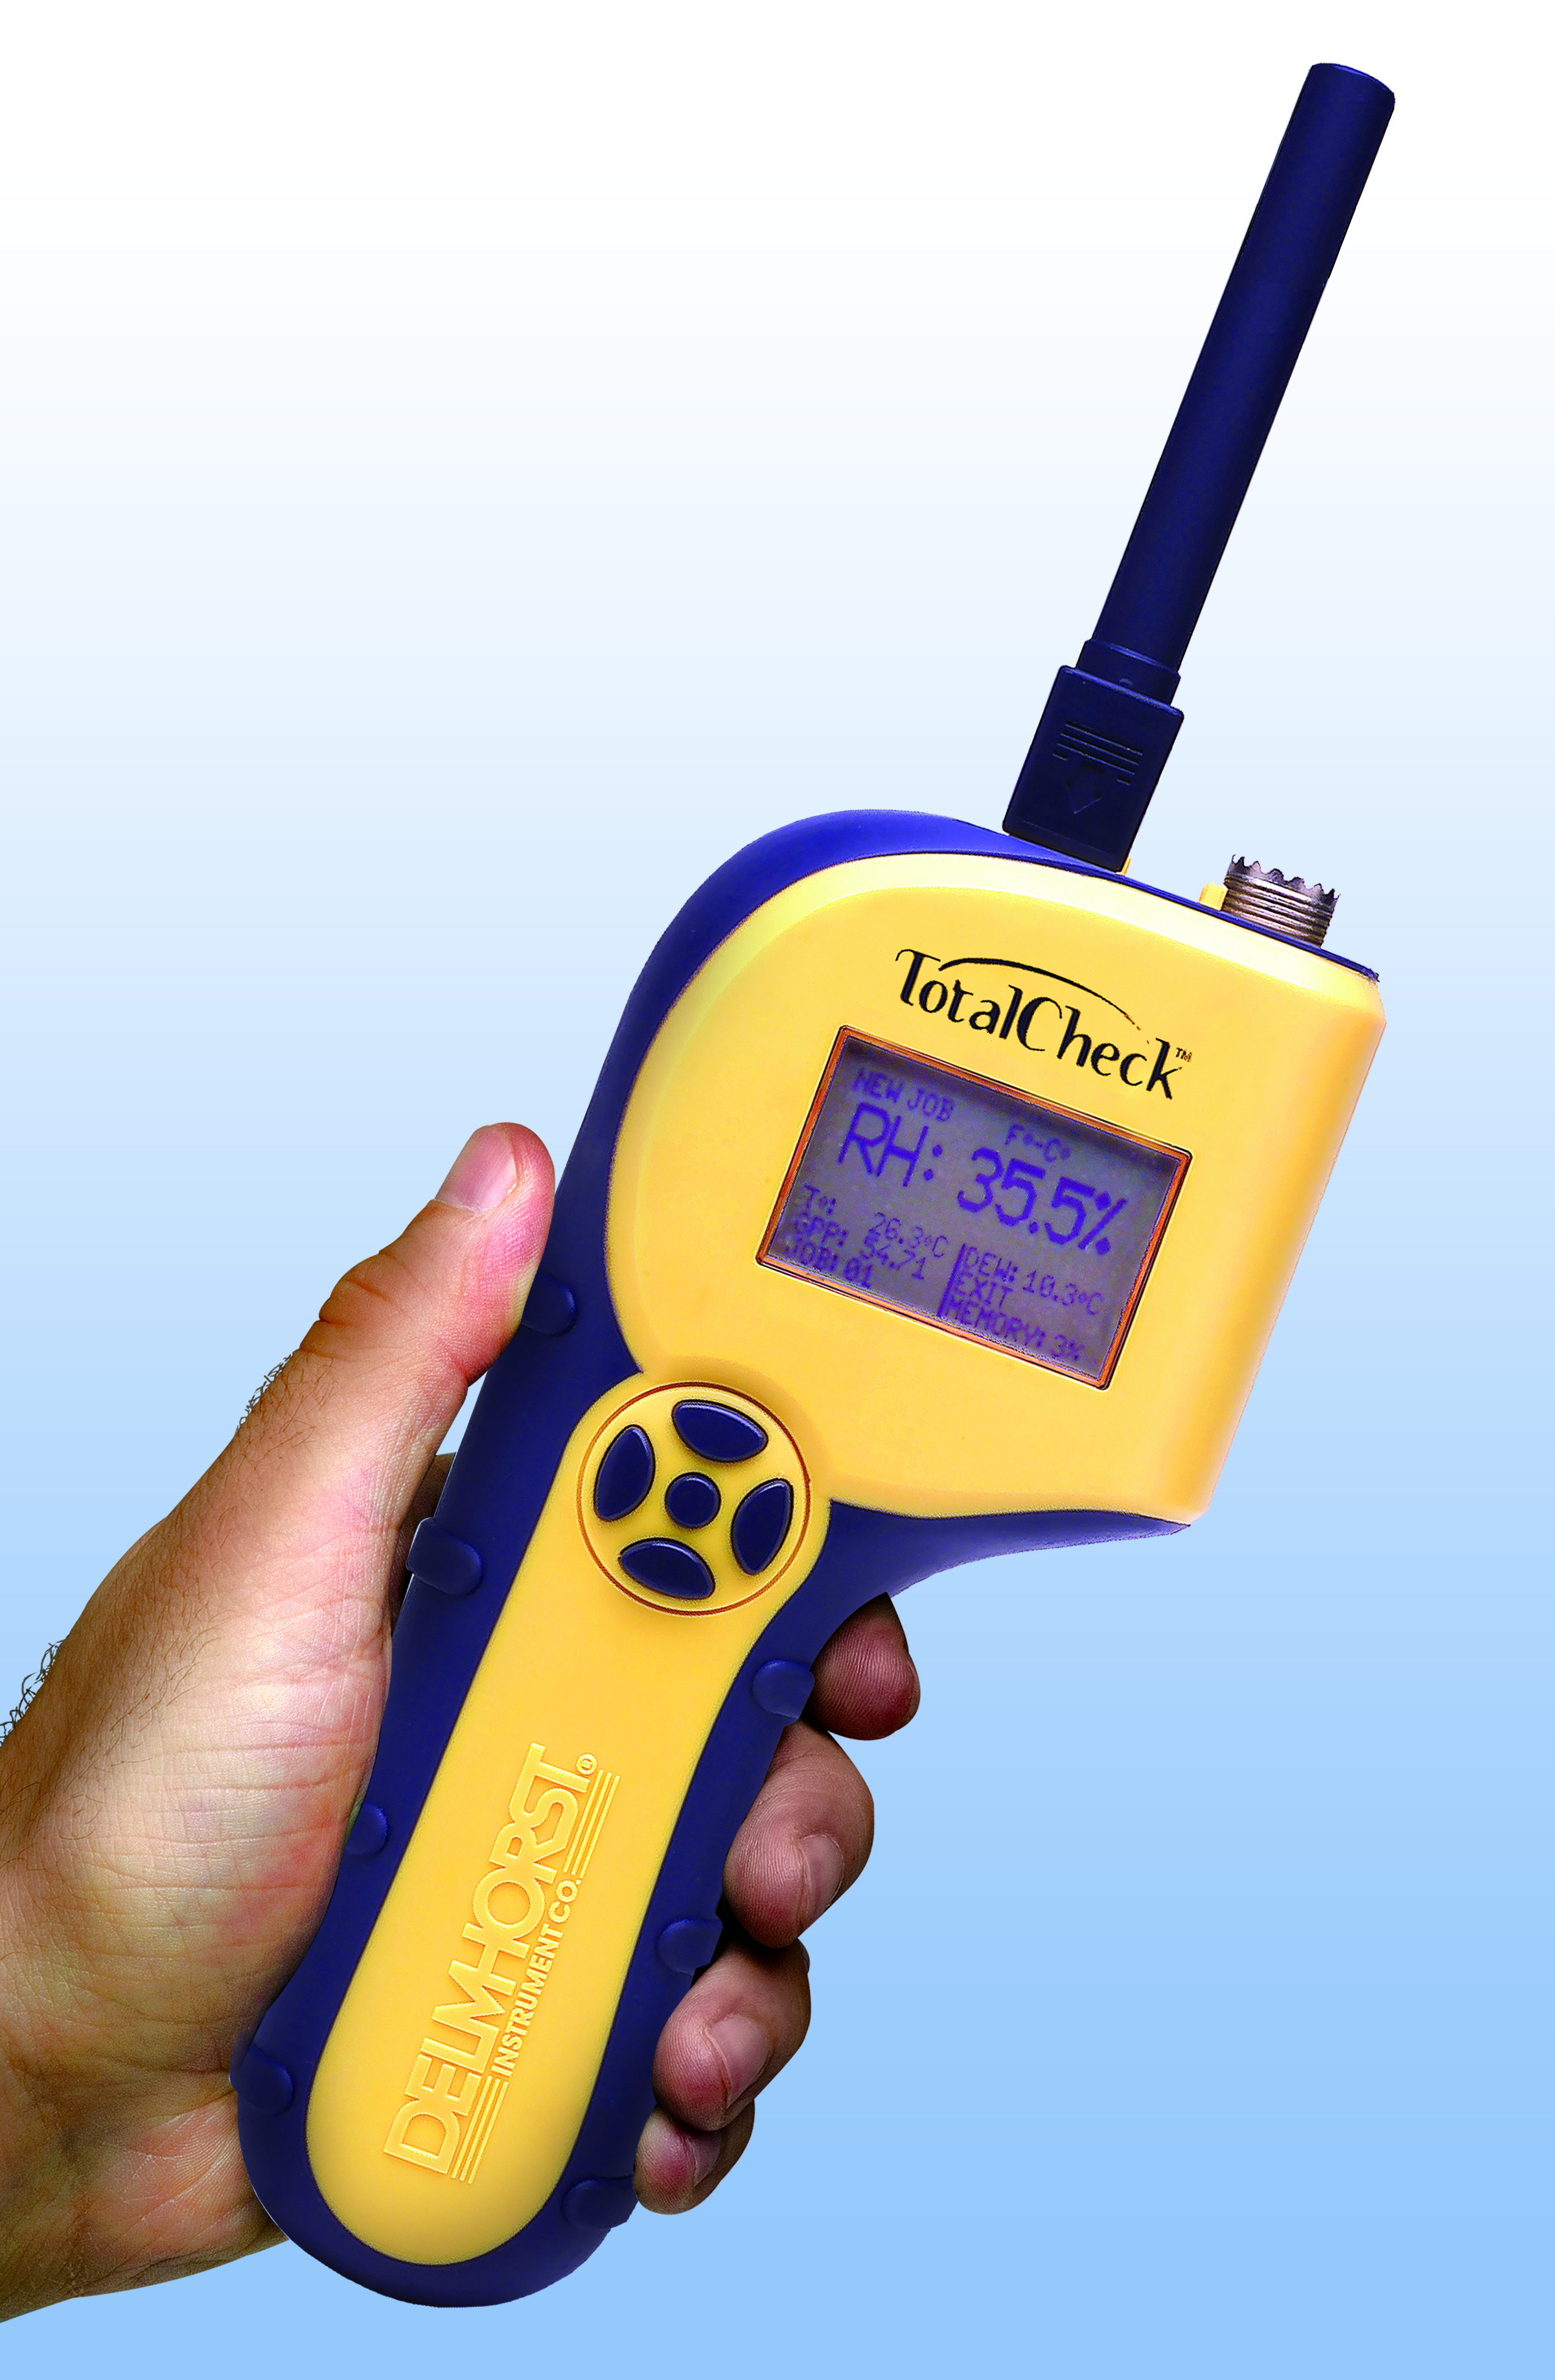 The TotalCheck 3-in-1 meter combines the functions of a pin moisture meter, pinless meter, and a thermo-hygrometer in one tool.